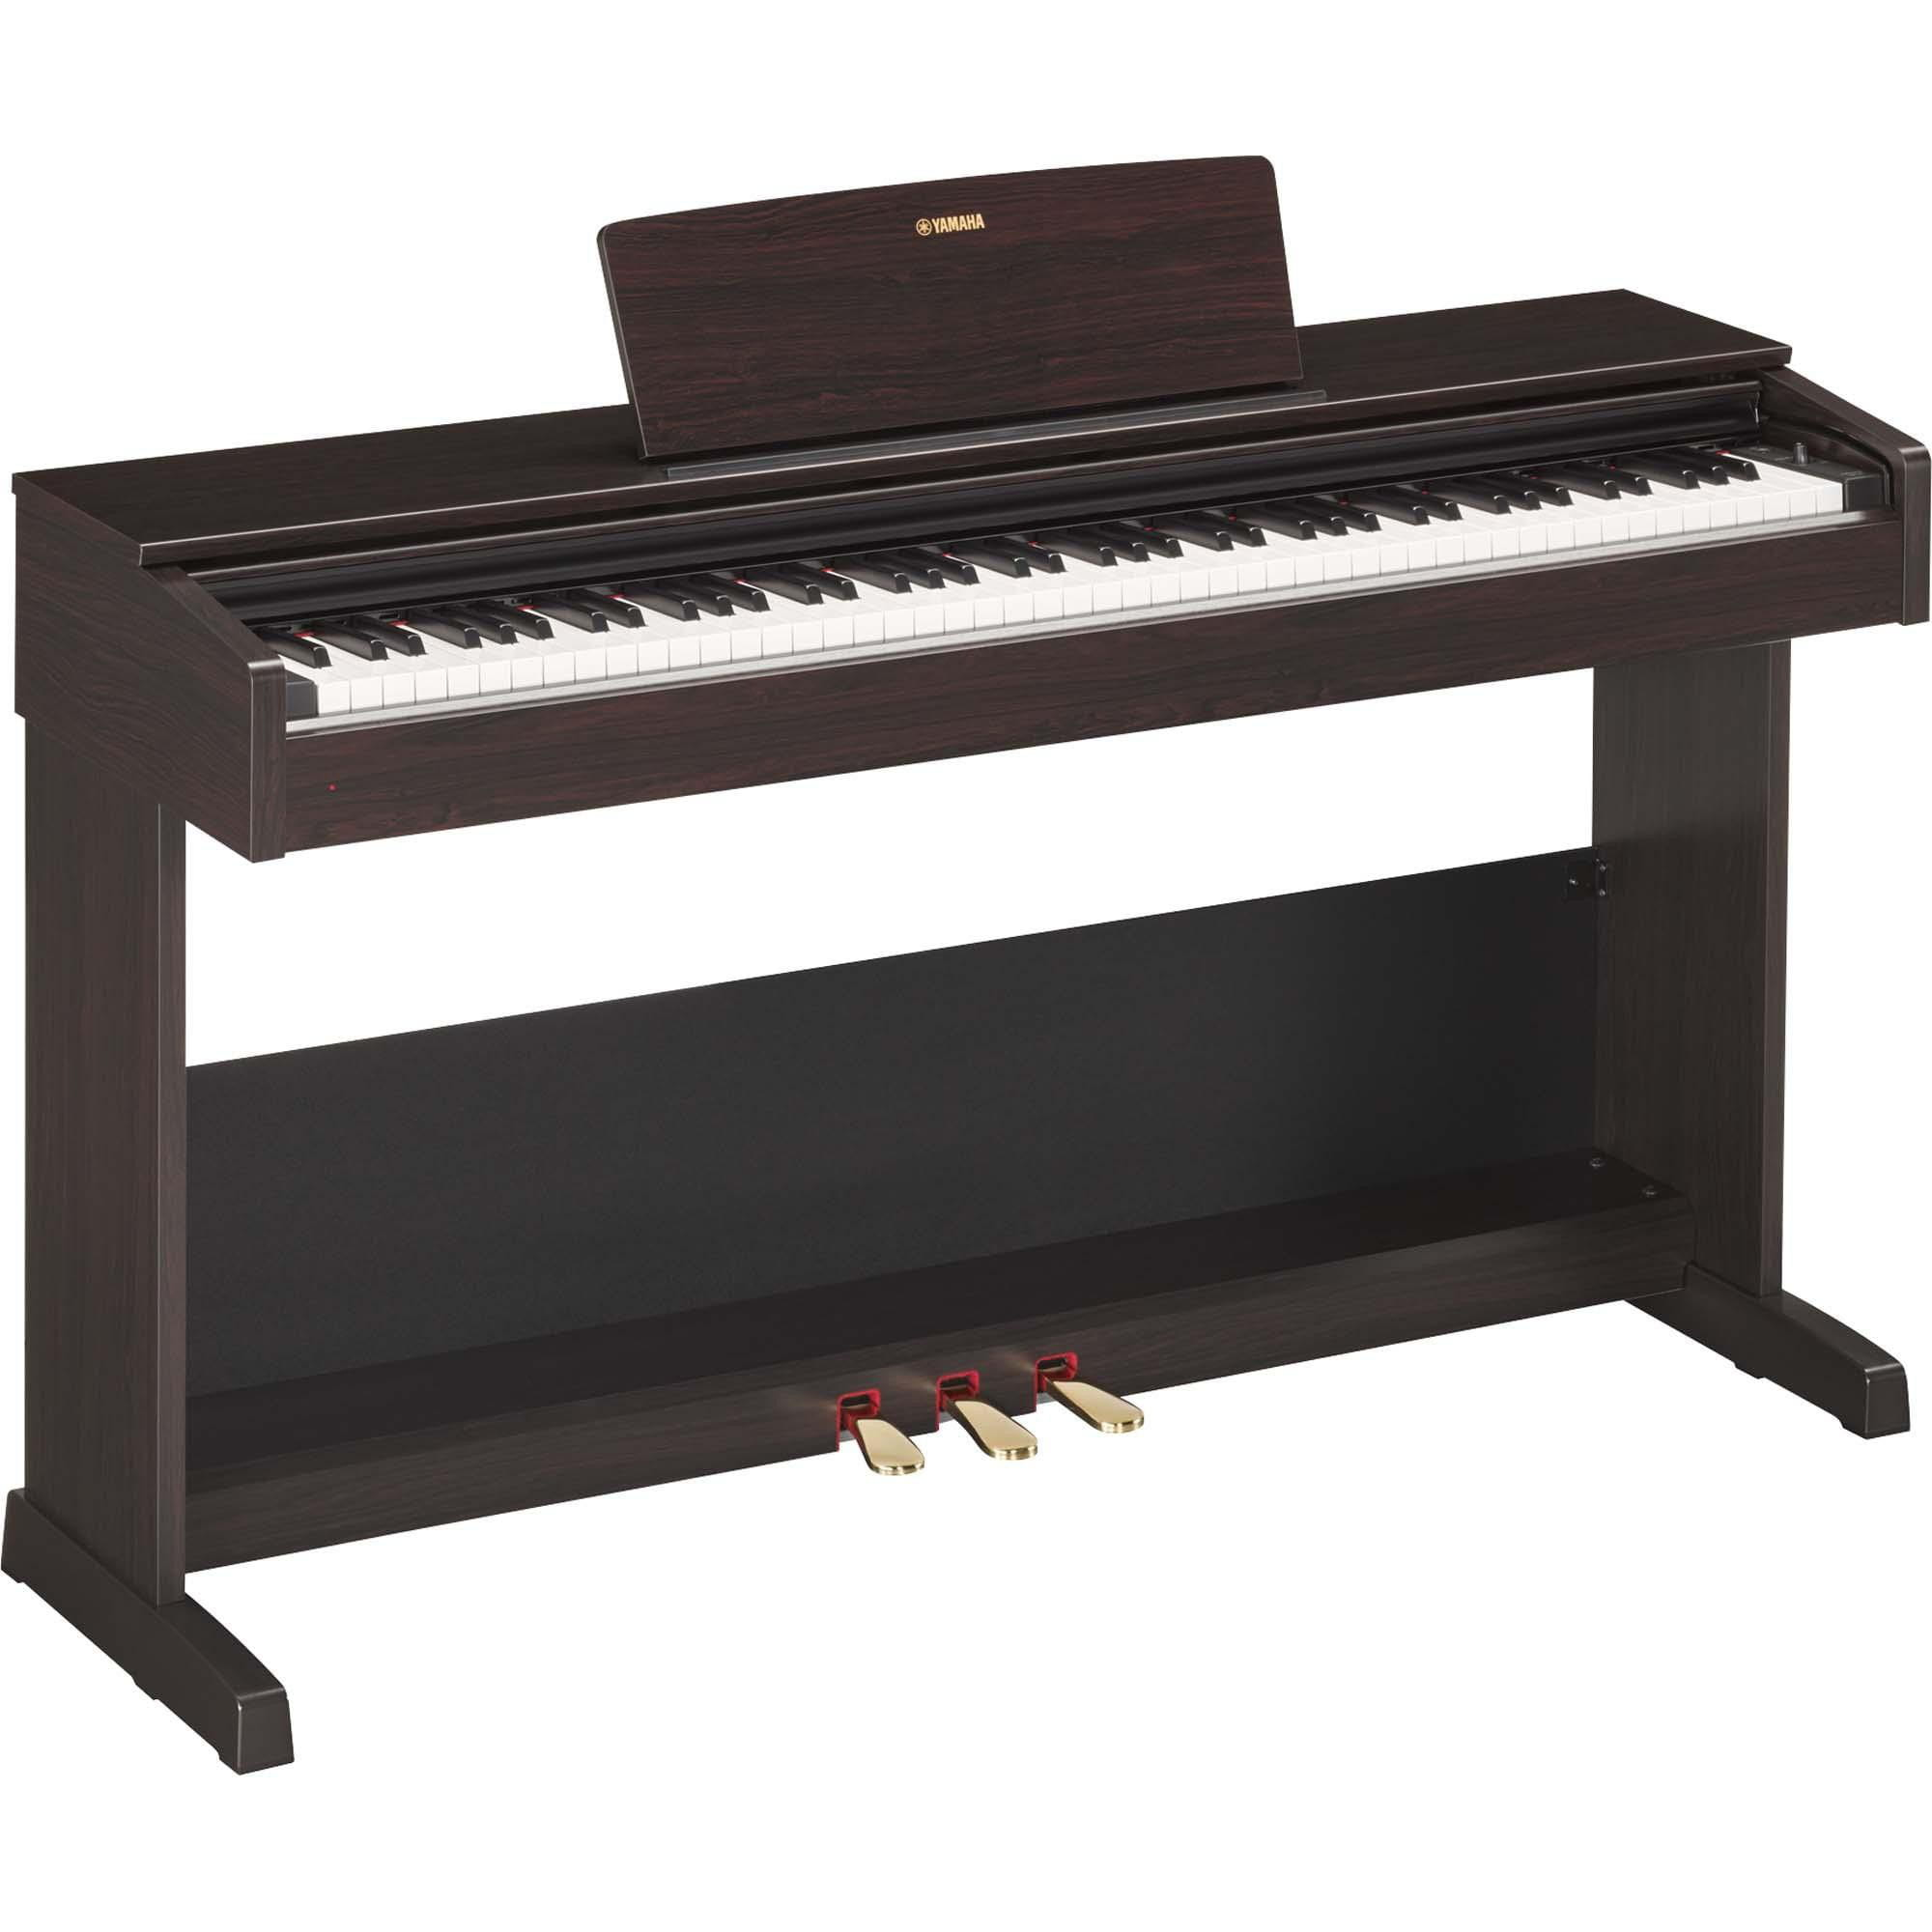 Piano Digital ARIUS YDP-103R Marrom YAMAHA